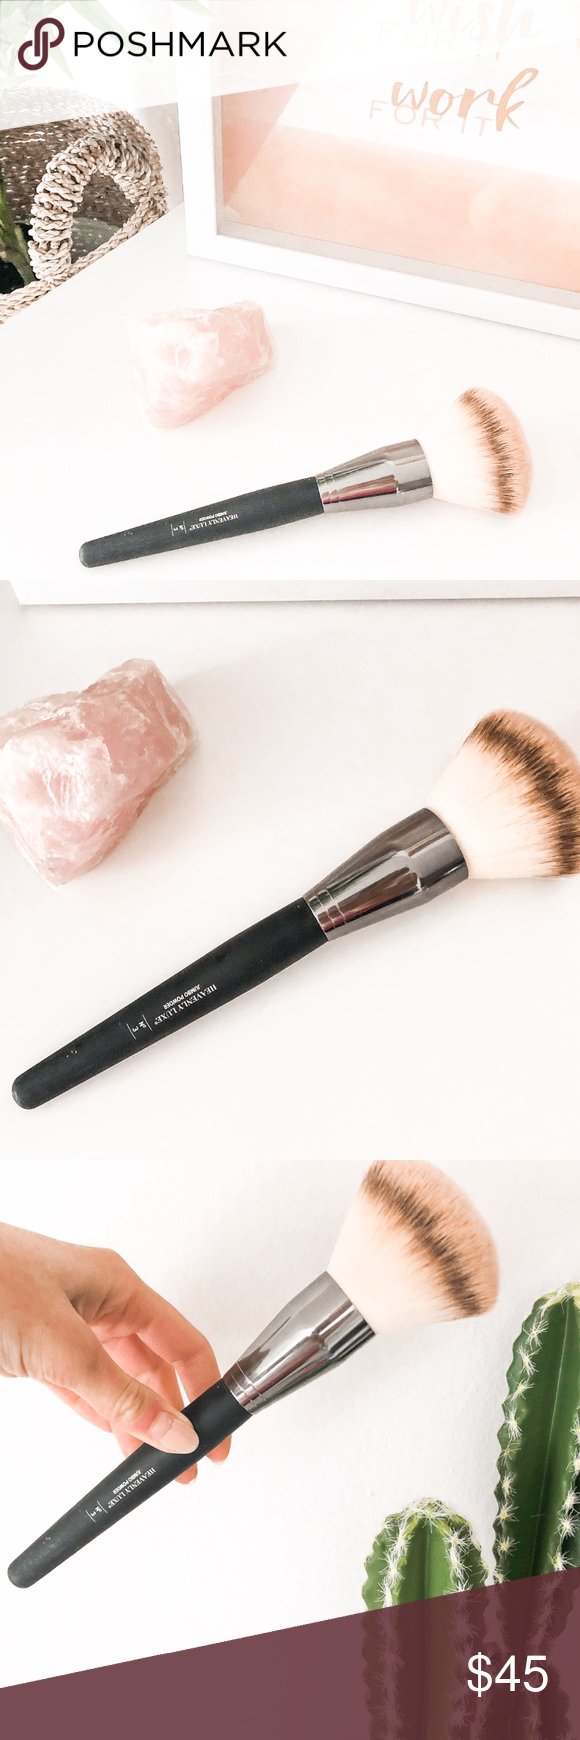 IT Cosmetics Heavenly Luxe Jumbo Powder Brush Makeup